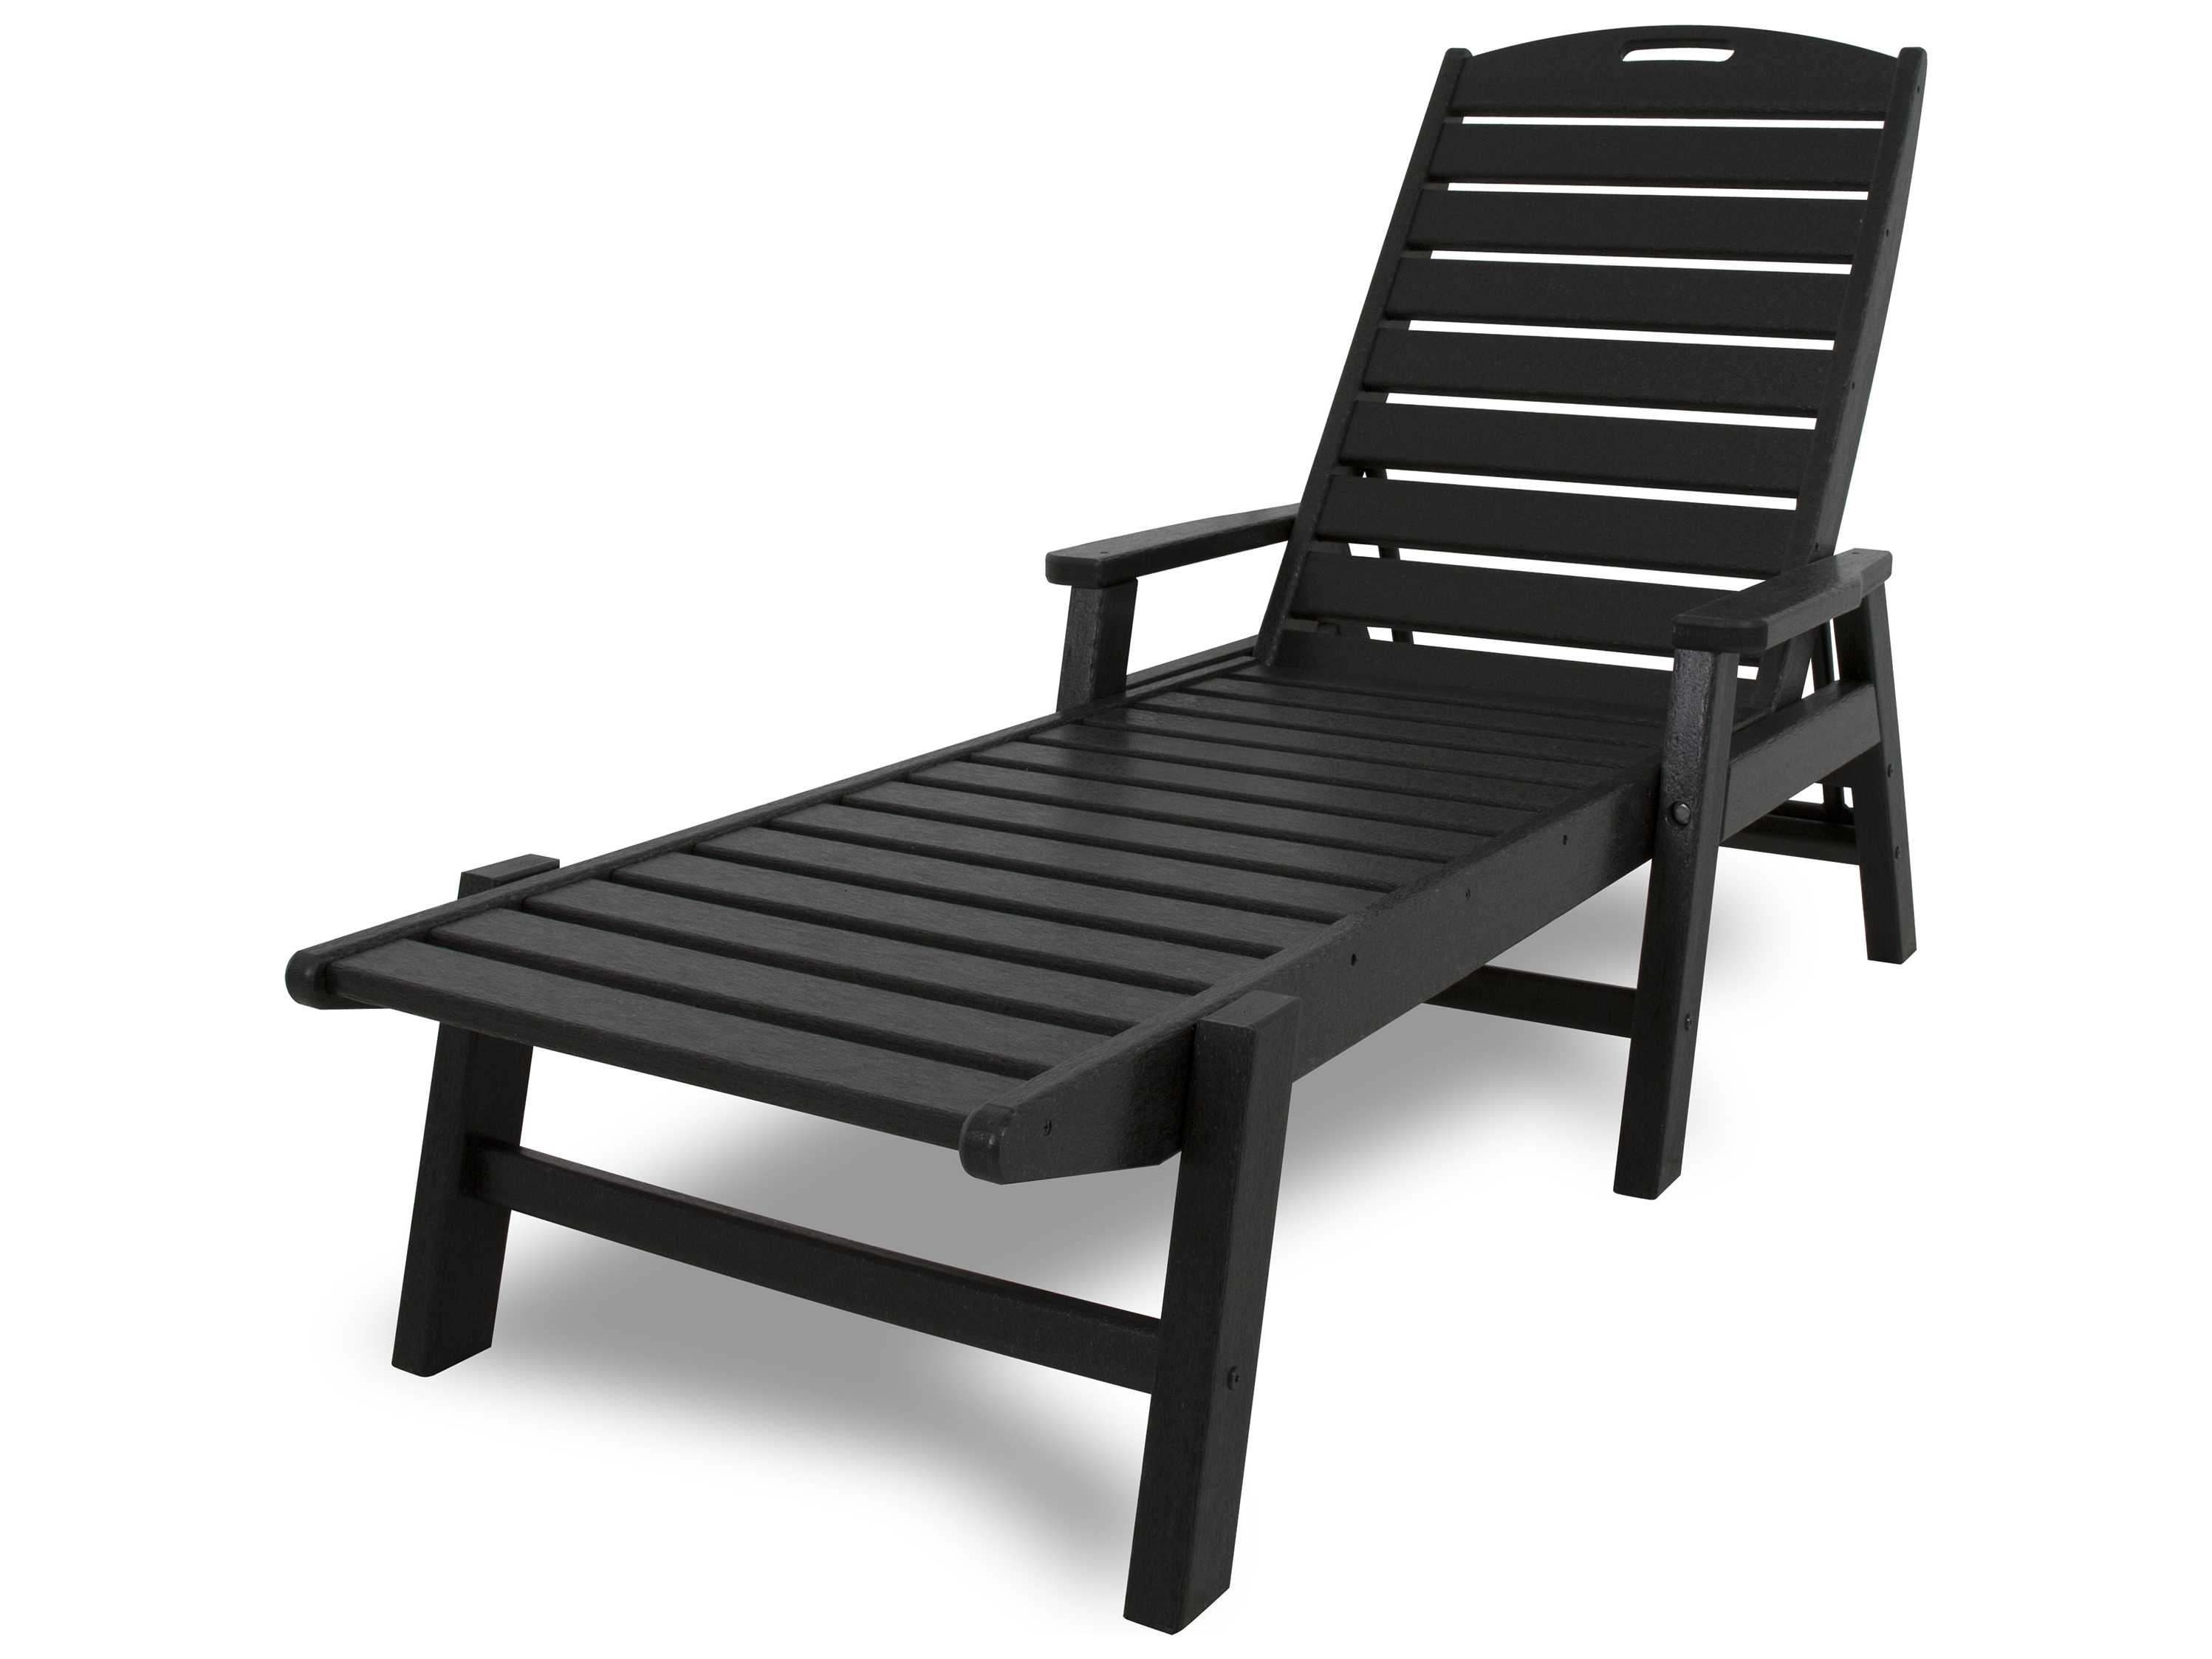 polywood nautical recycled plastic chaise lounge set nautilpch. Black Bedroom Furniture Sets. Home Design Ideas